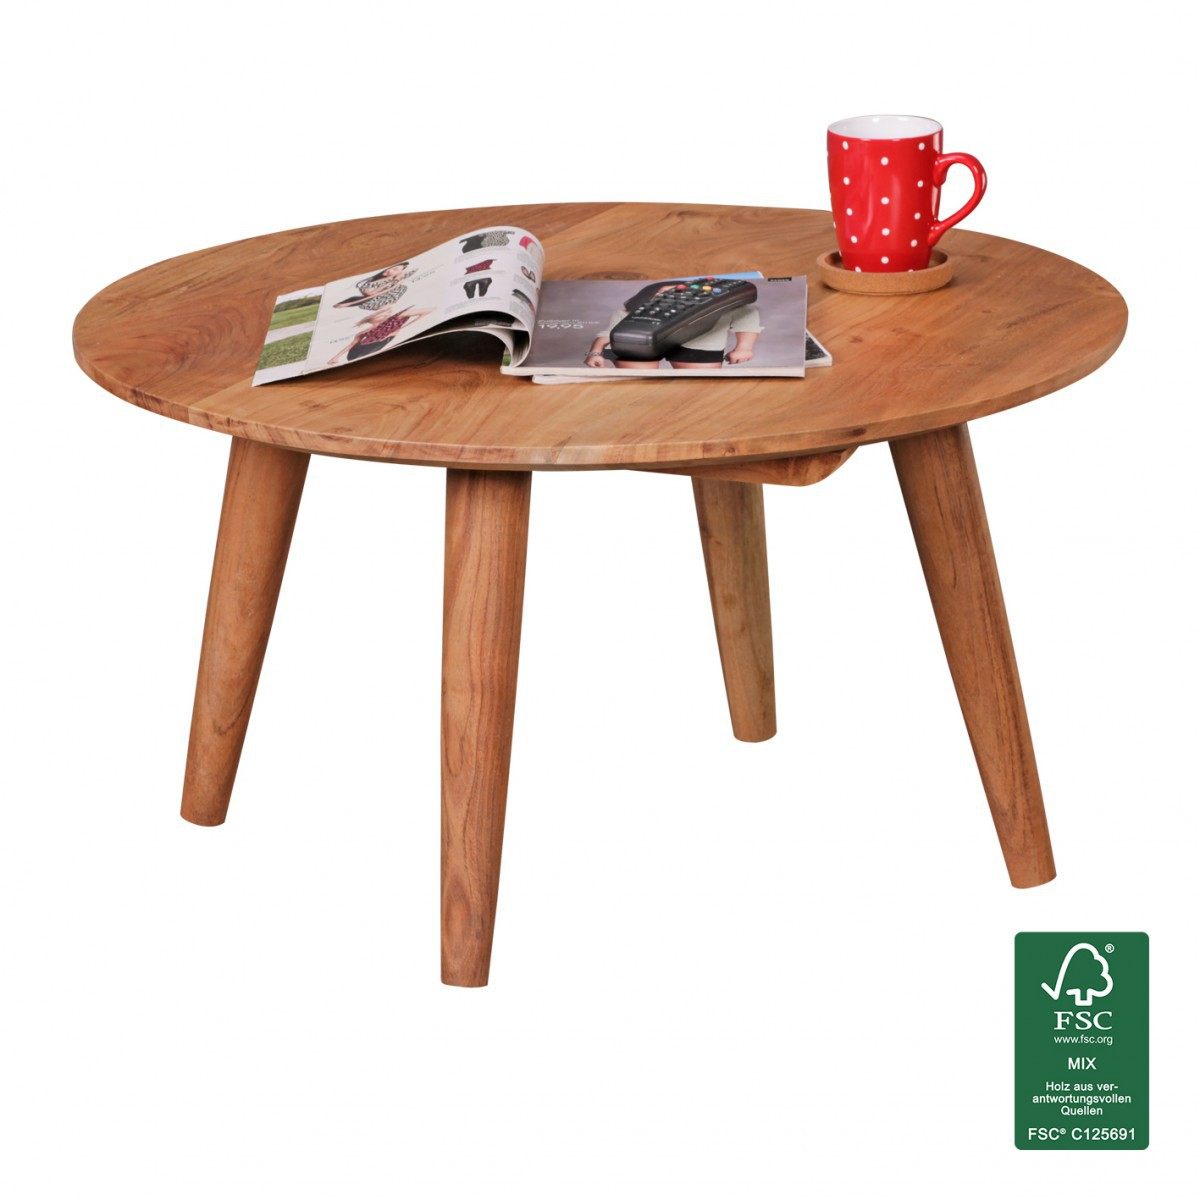 Finebuy table basse en bois massif acacia table basse for Table ronde bois massif